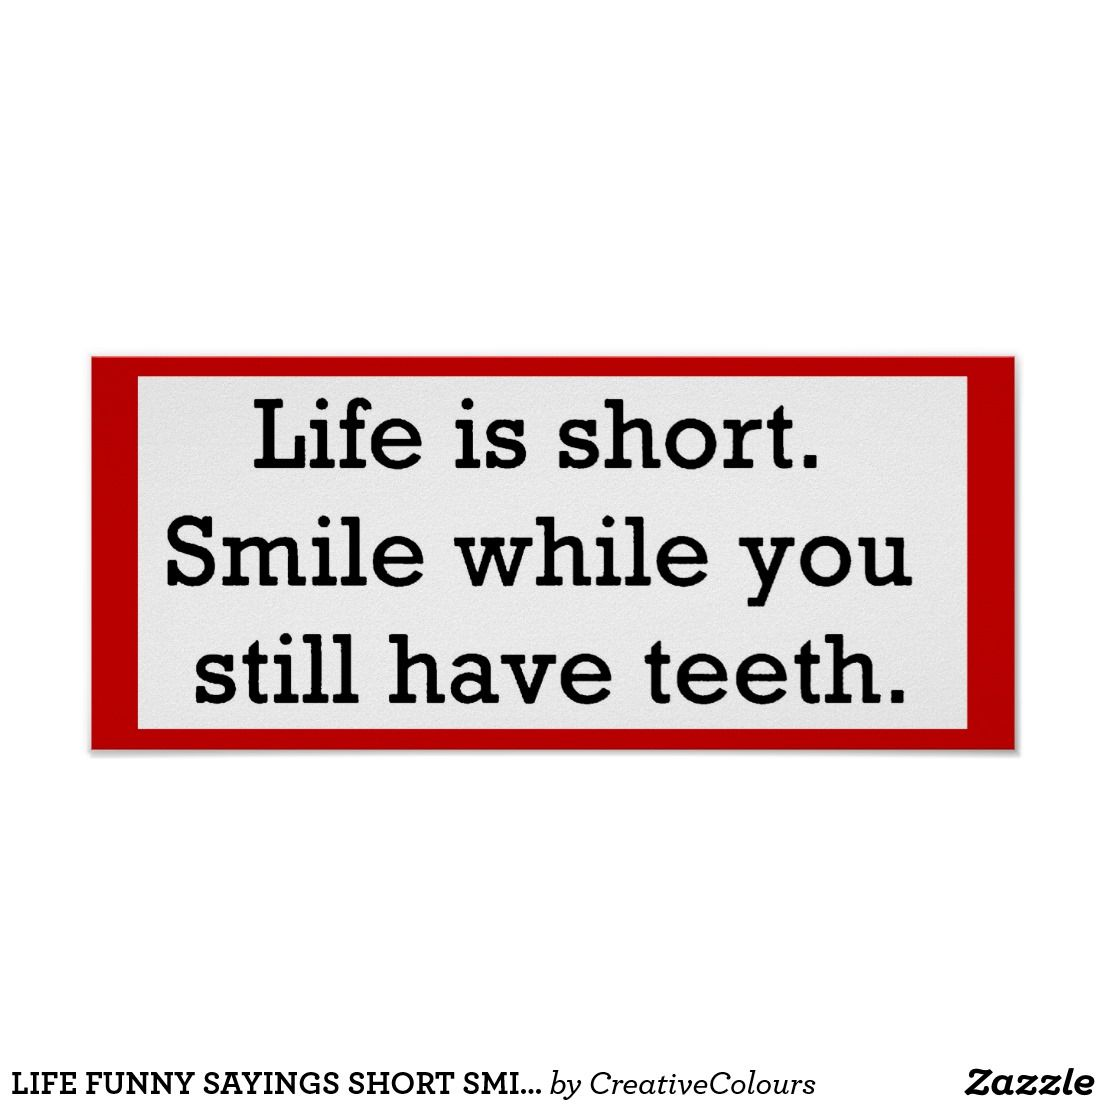 LIFE FUNNY SAYINGS SHORT SMILE WHILE YOU STILL POSTER | Zazzle.com